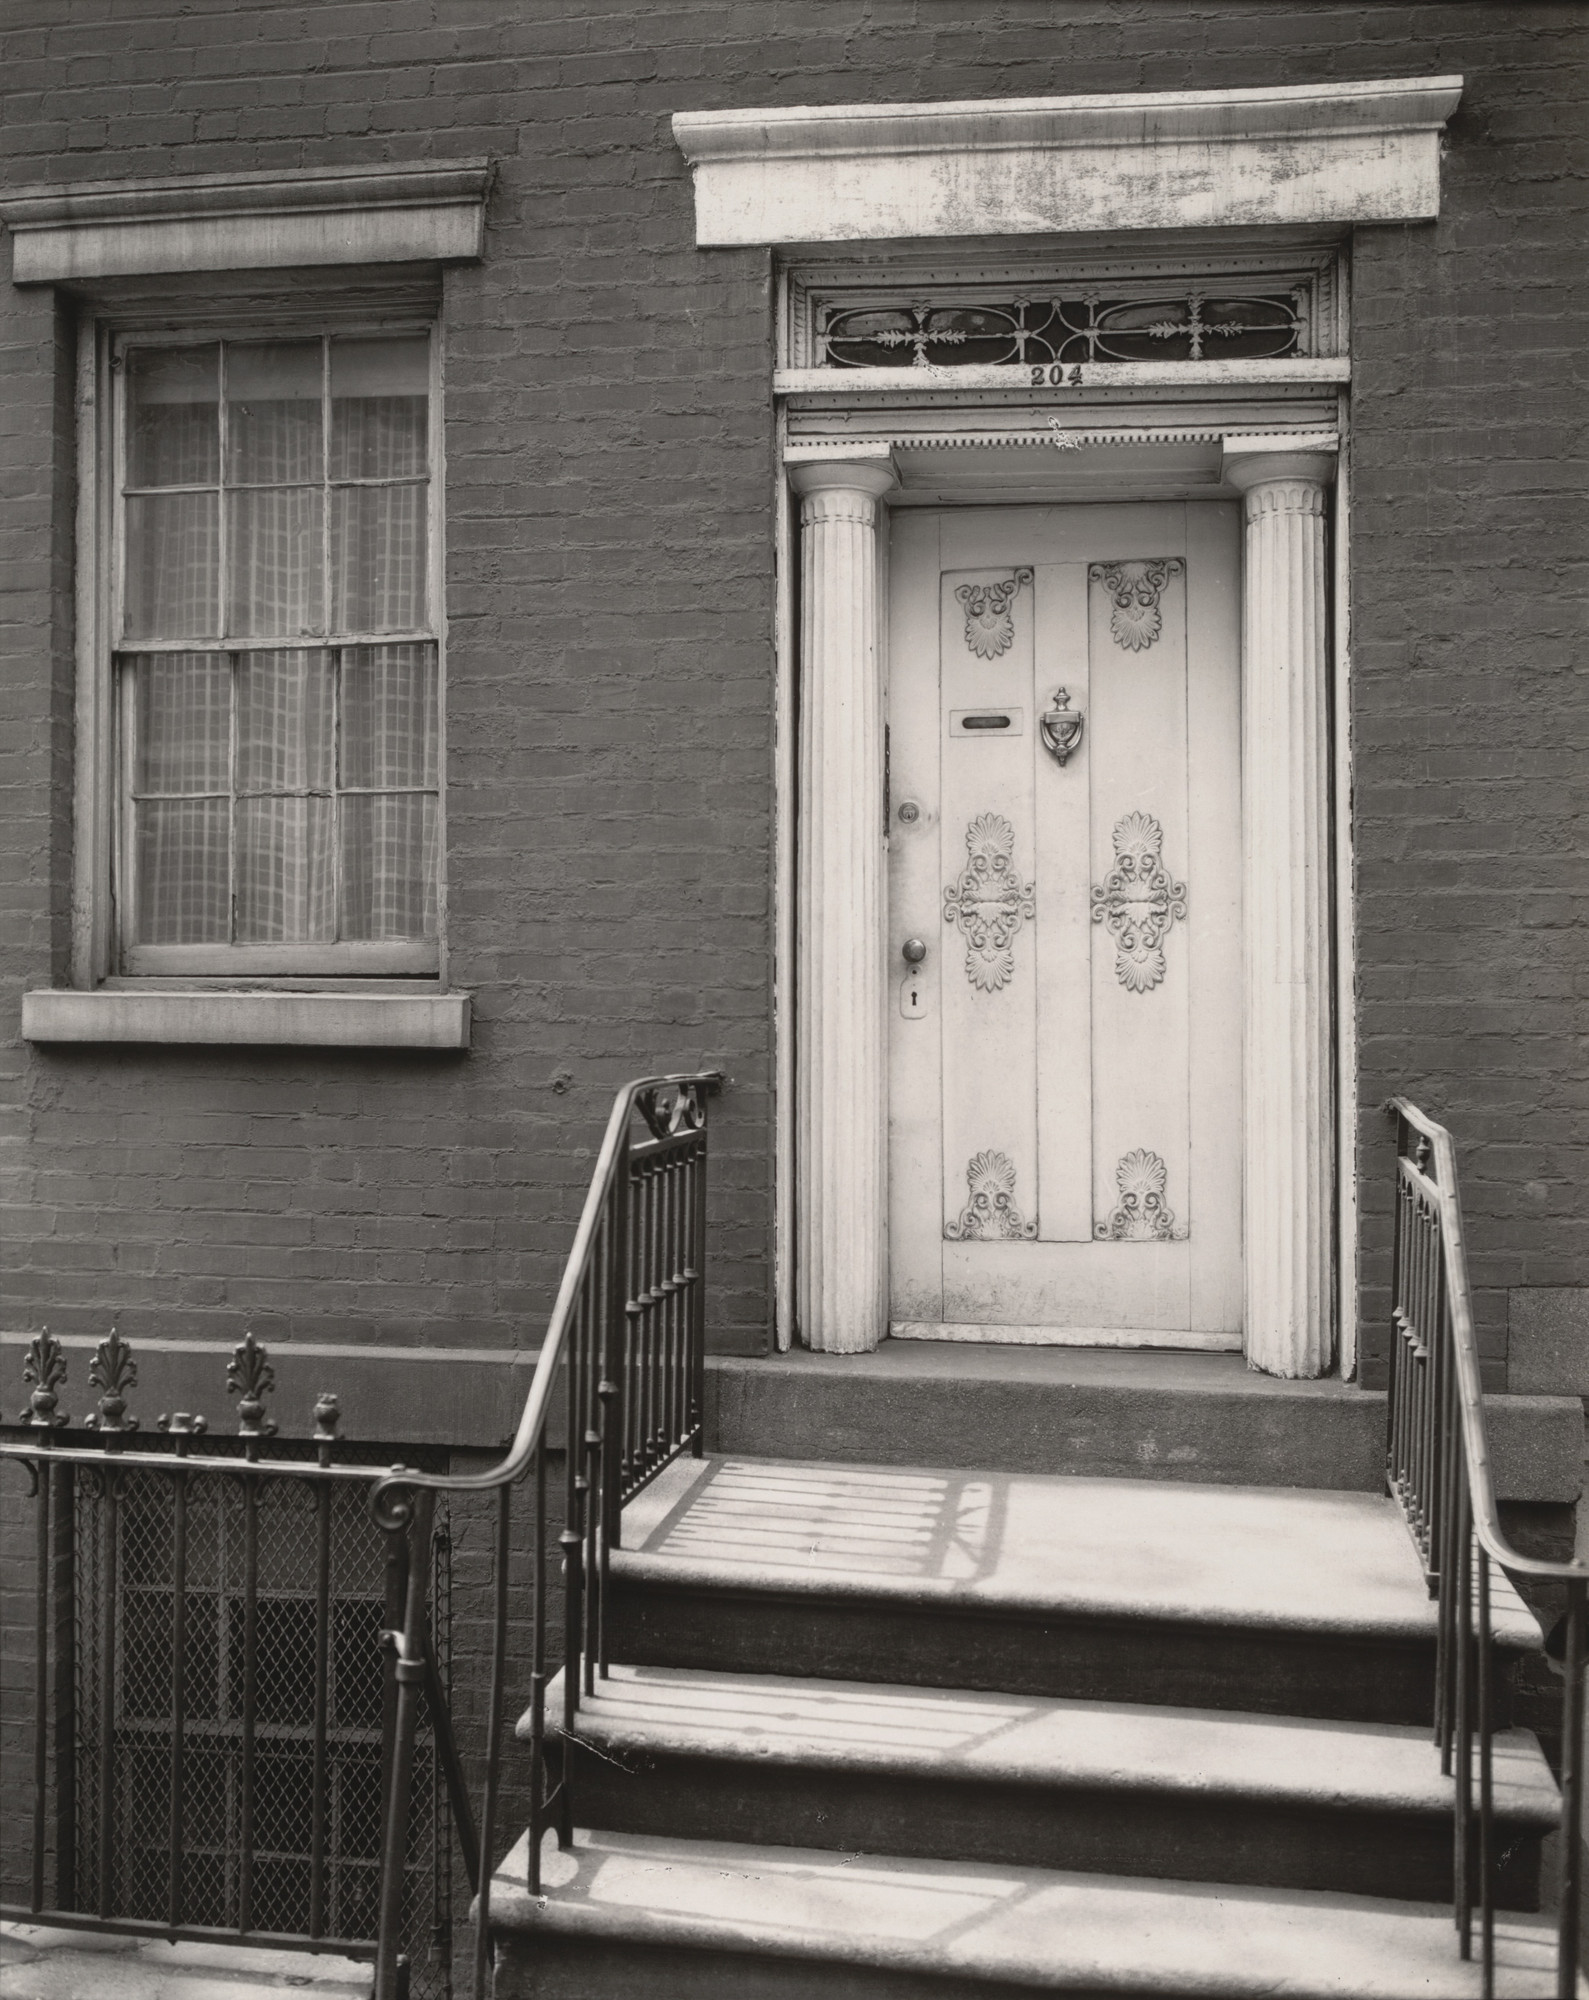 Berenice Abbott. Doorway, 204 West 13th Street, Manhattan. May 5, 1937